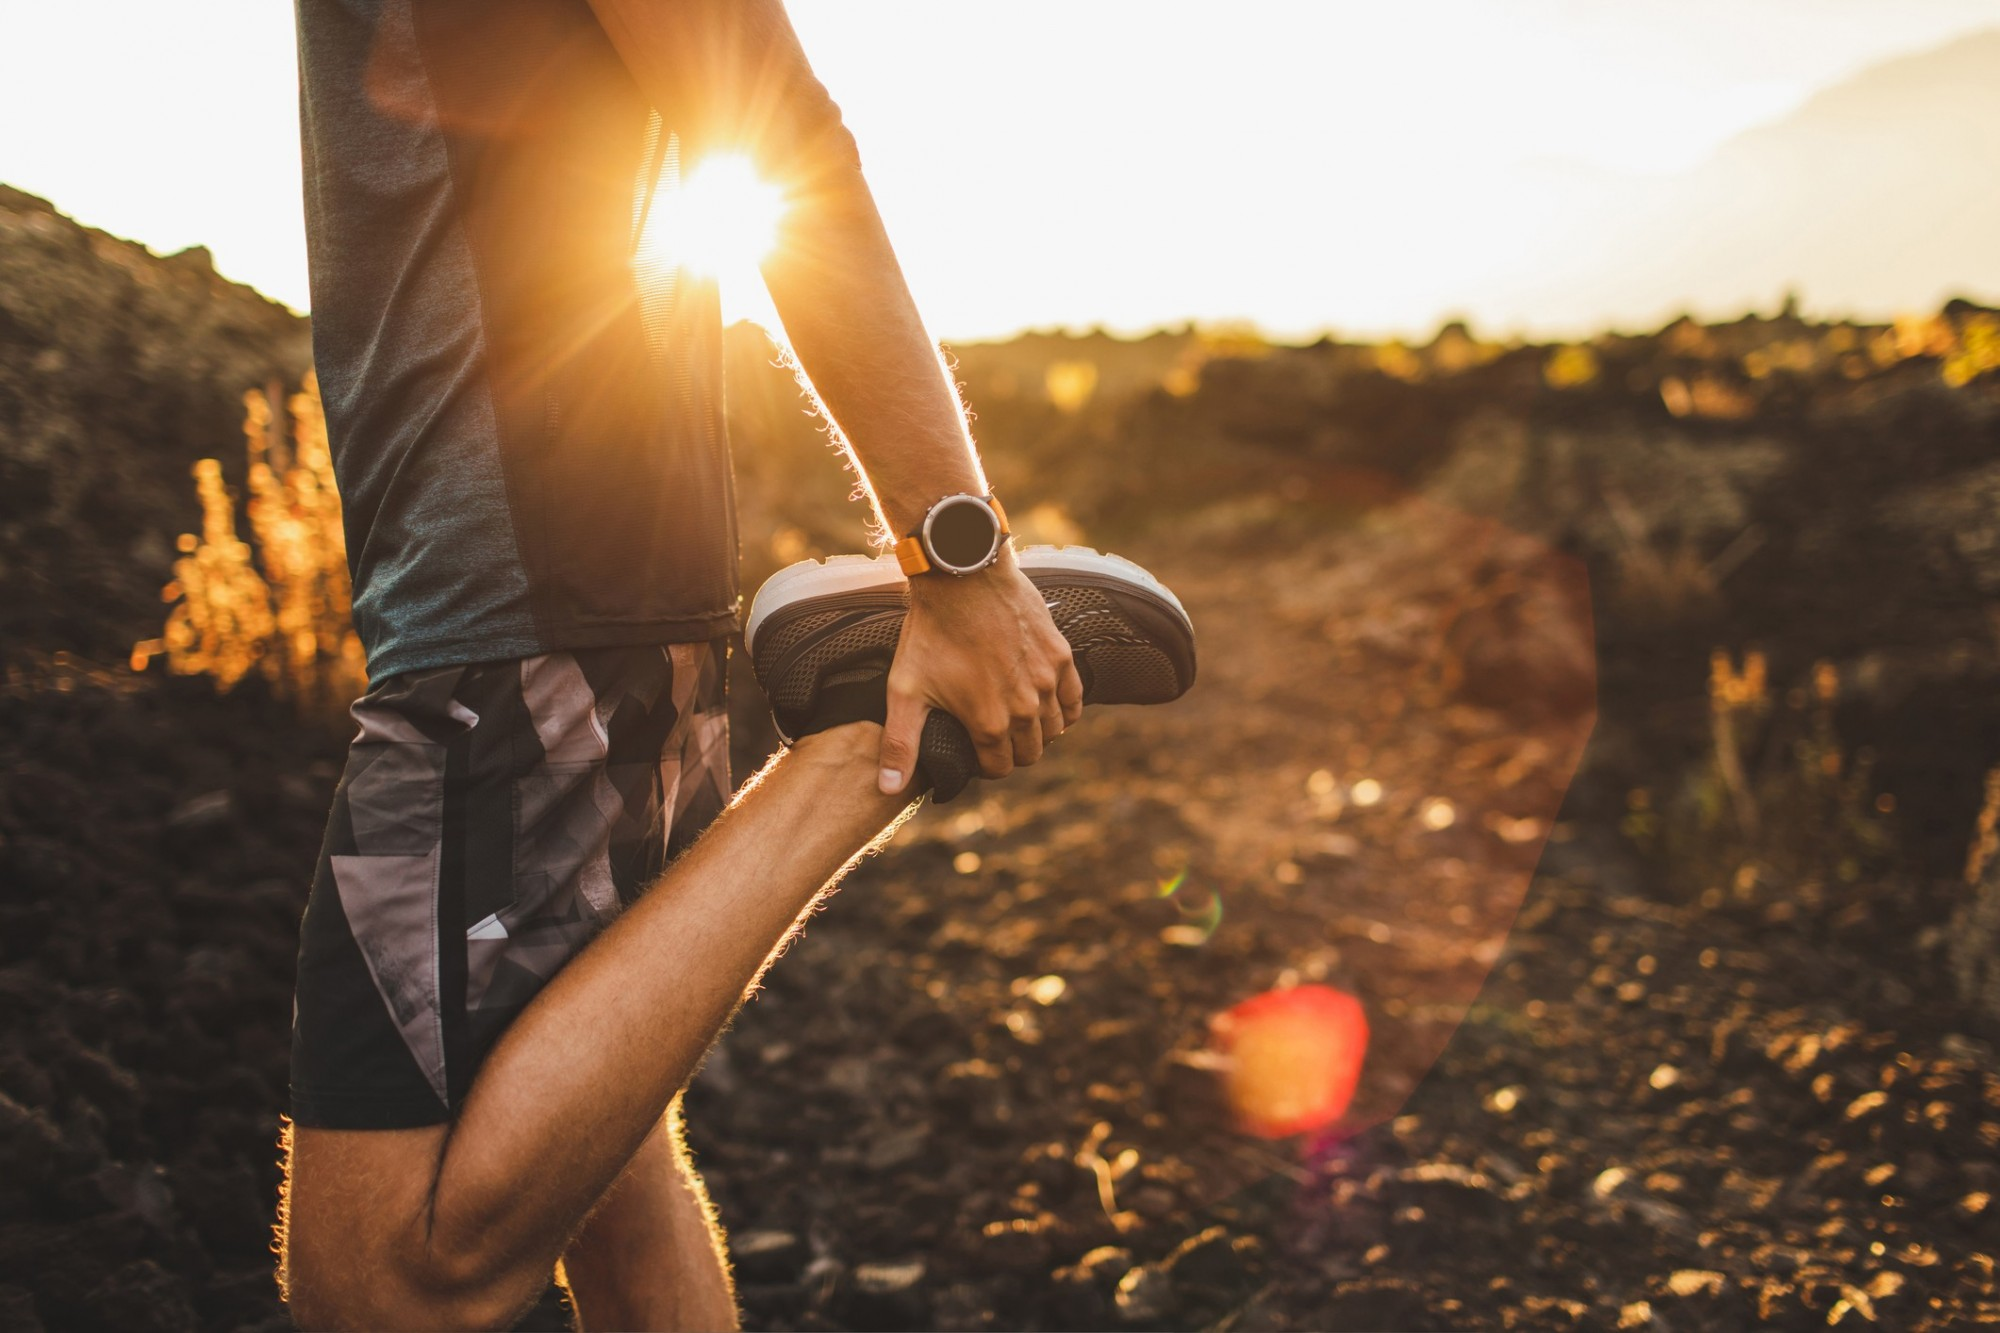 A runner pulls their foot up to stretch their quadricep, the sun is setting in the background